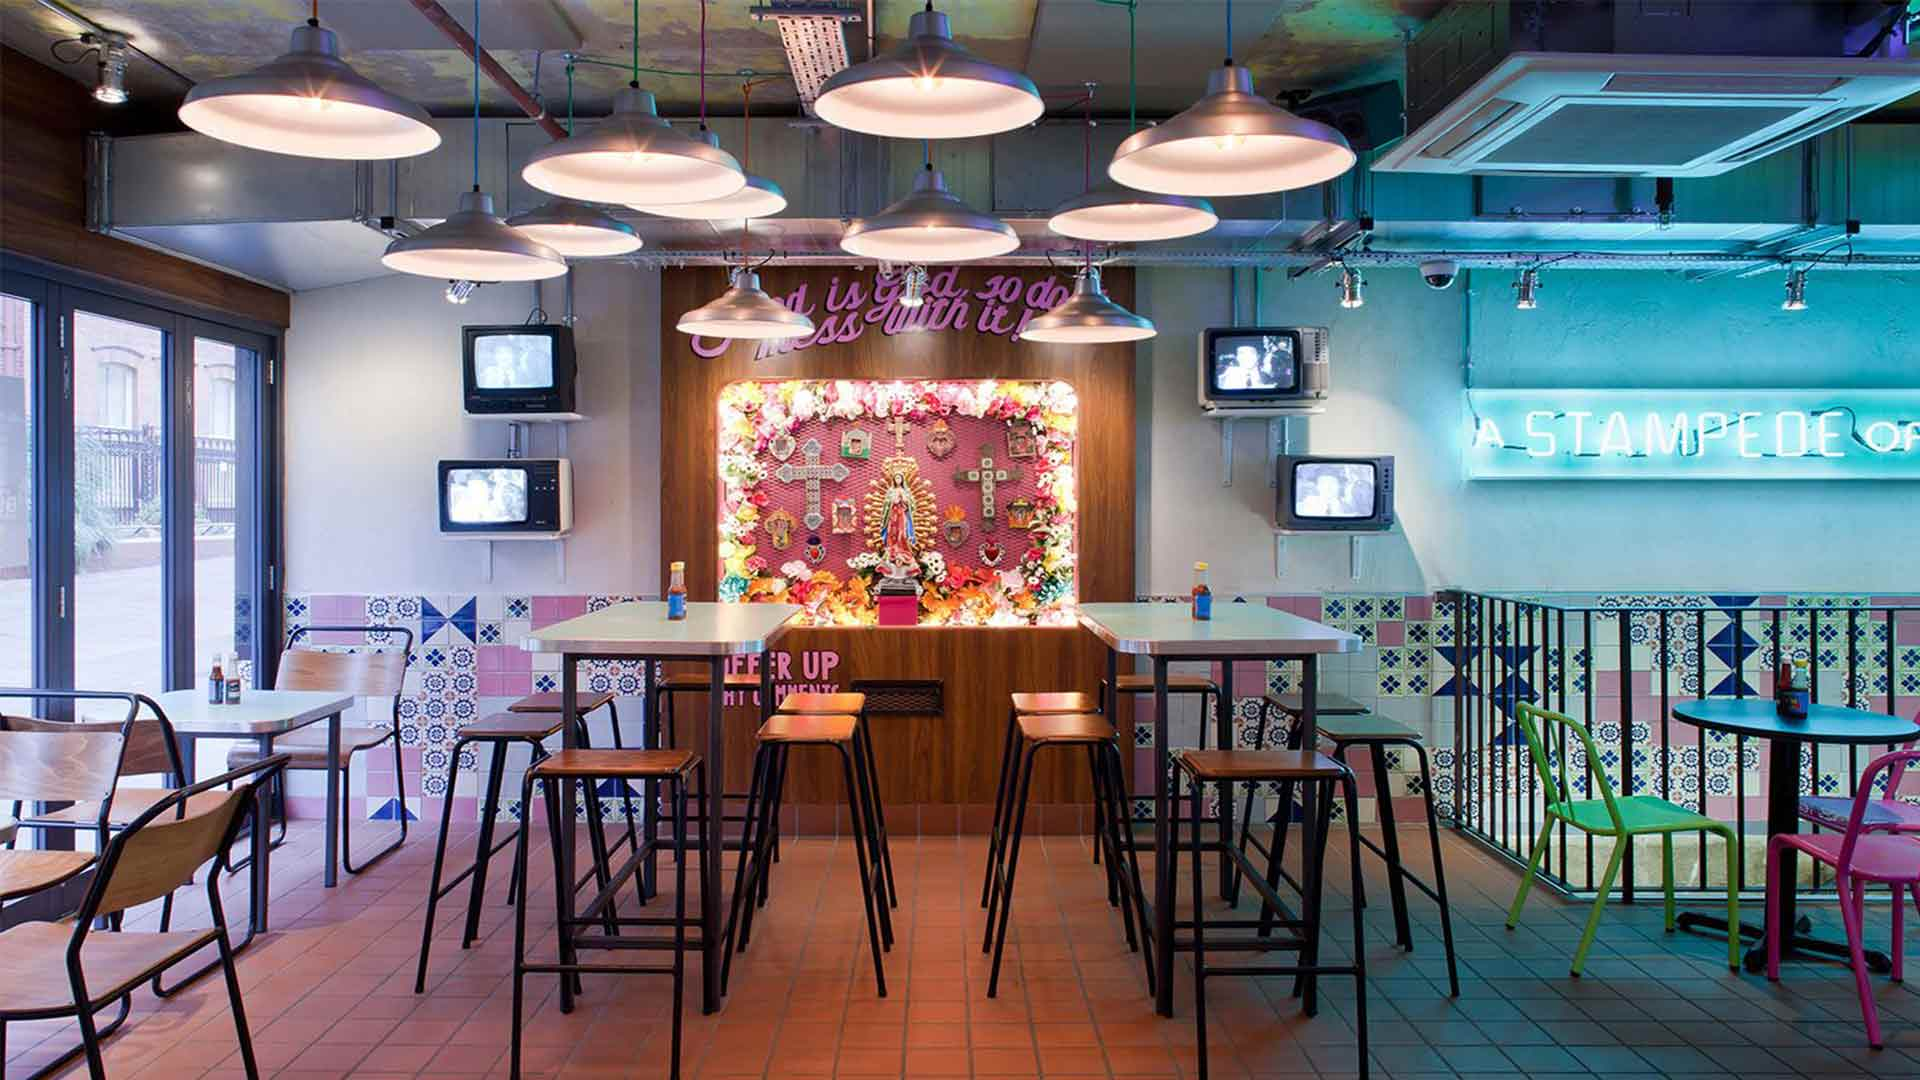 Funky Restaurant Space Tables Feature Pendants Wall Detail Old TVs Lighting Nulty